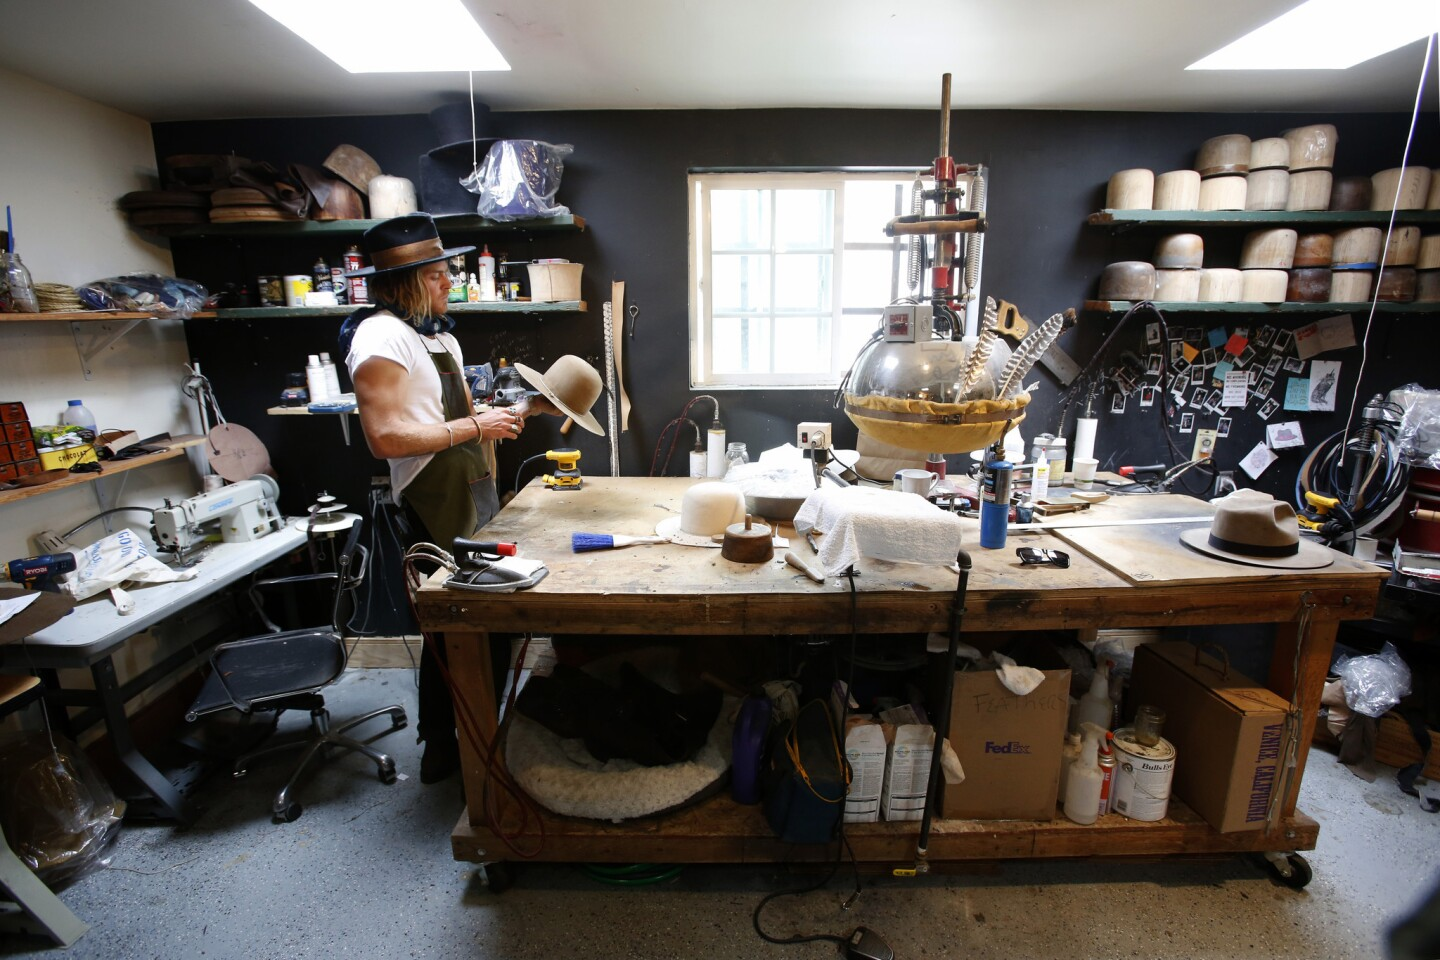 Nick Fouquet, who is also a model, handcrafts one-of-a-kind hats in his Venice studio. His creations have become popular among celebrities such as Madonna and Pharrell Williams.